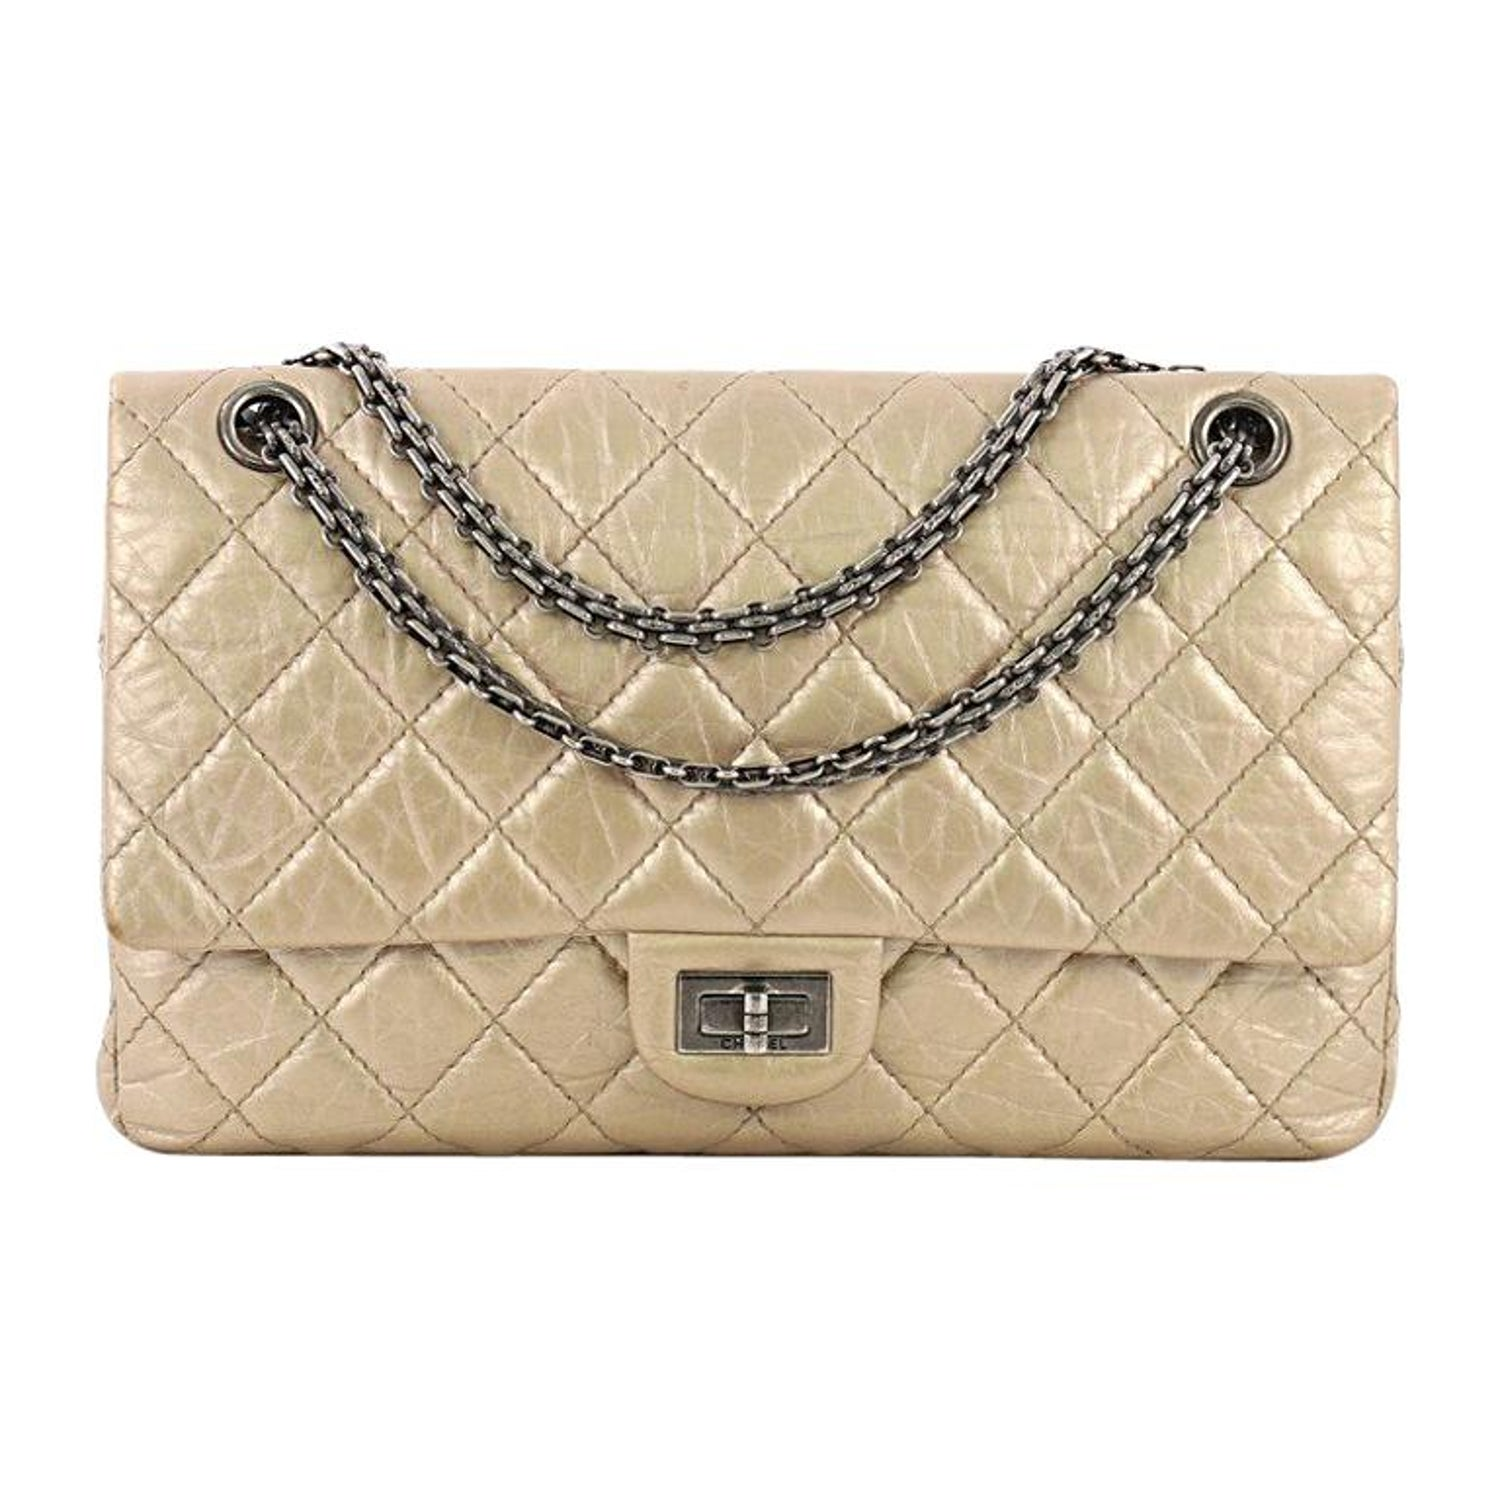 7ae9fa0bbcb712 Chanel Reissue 2.55 Handbag Quilted Metallic Aged Calfskin 226 at 1stdibs